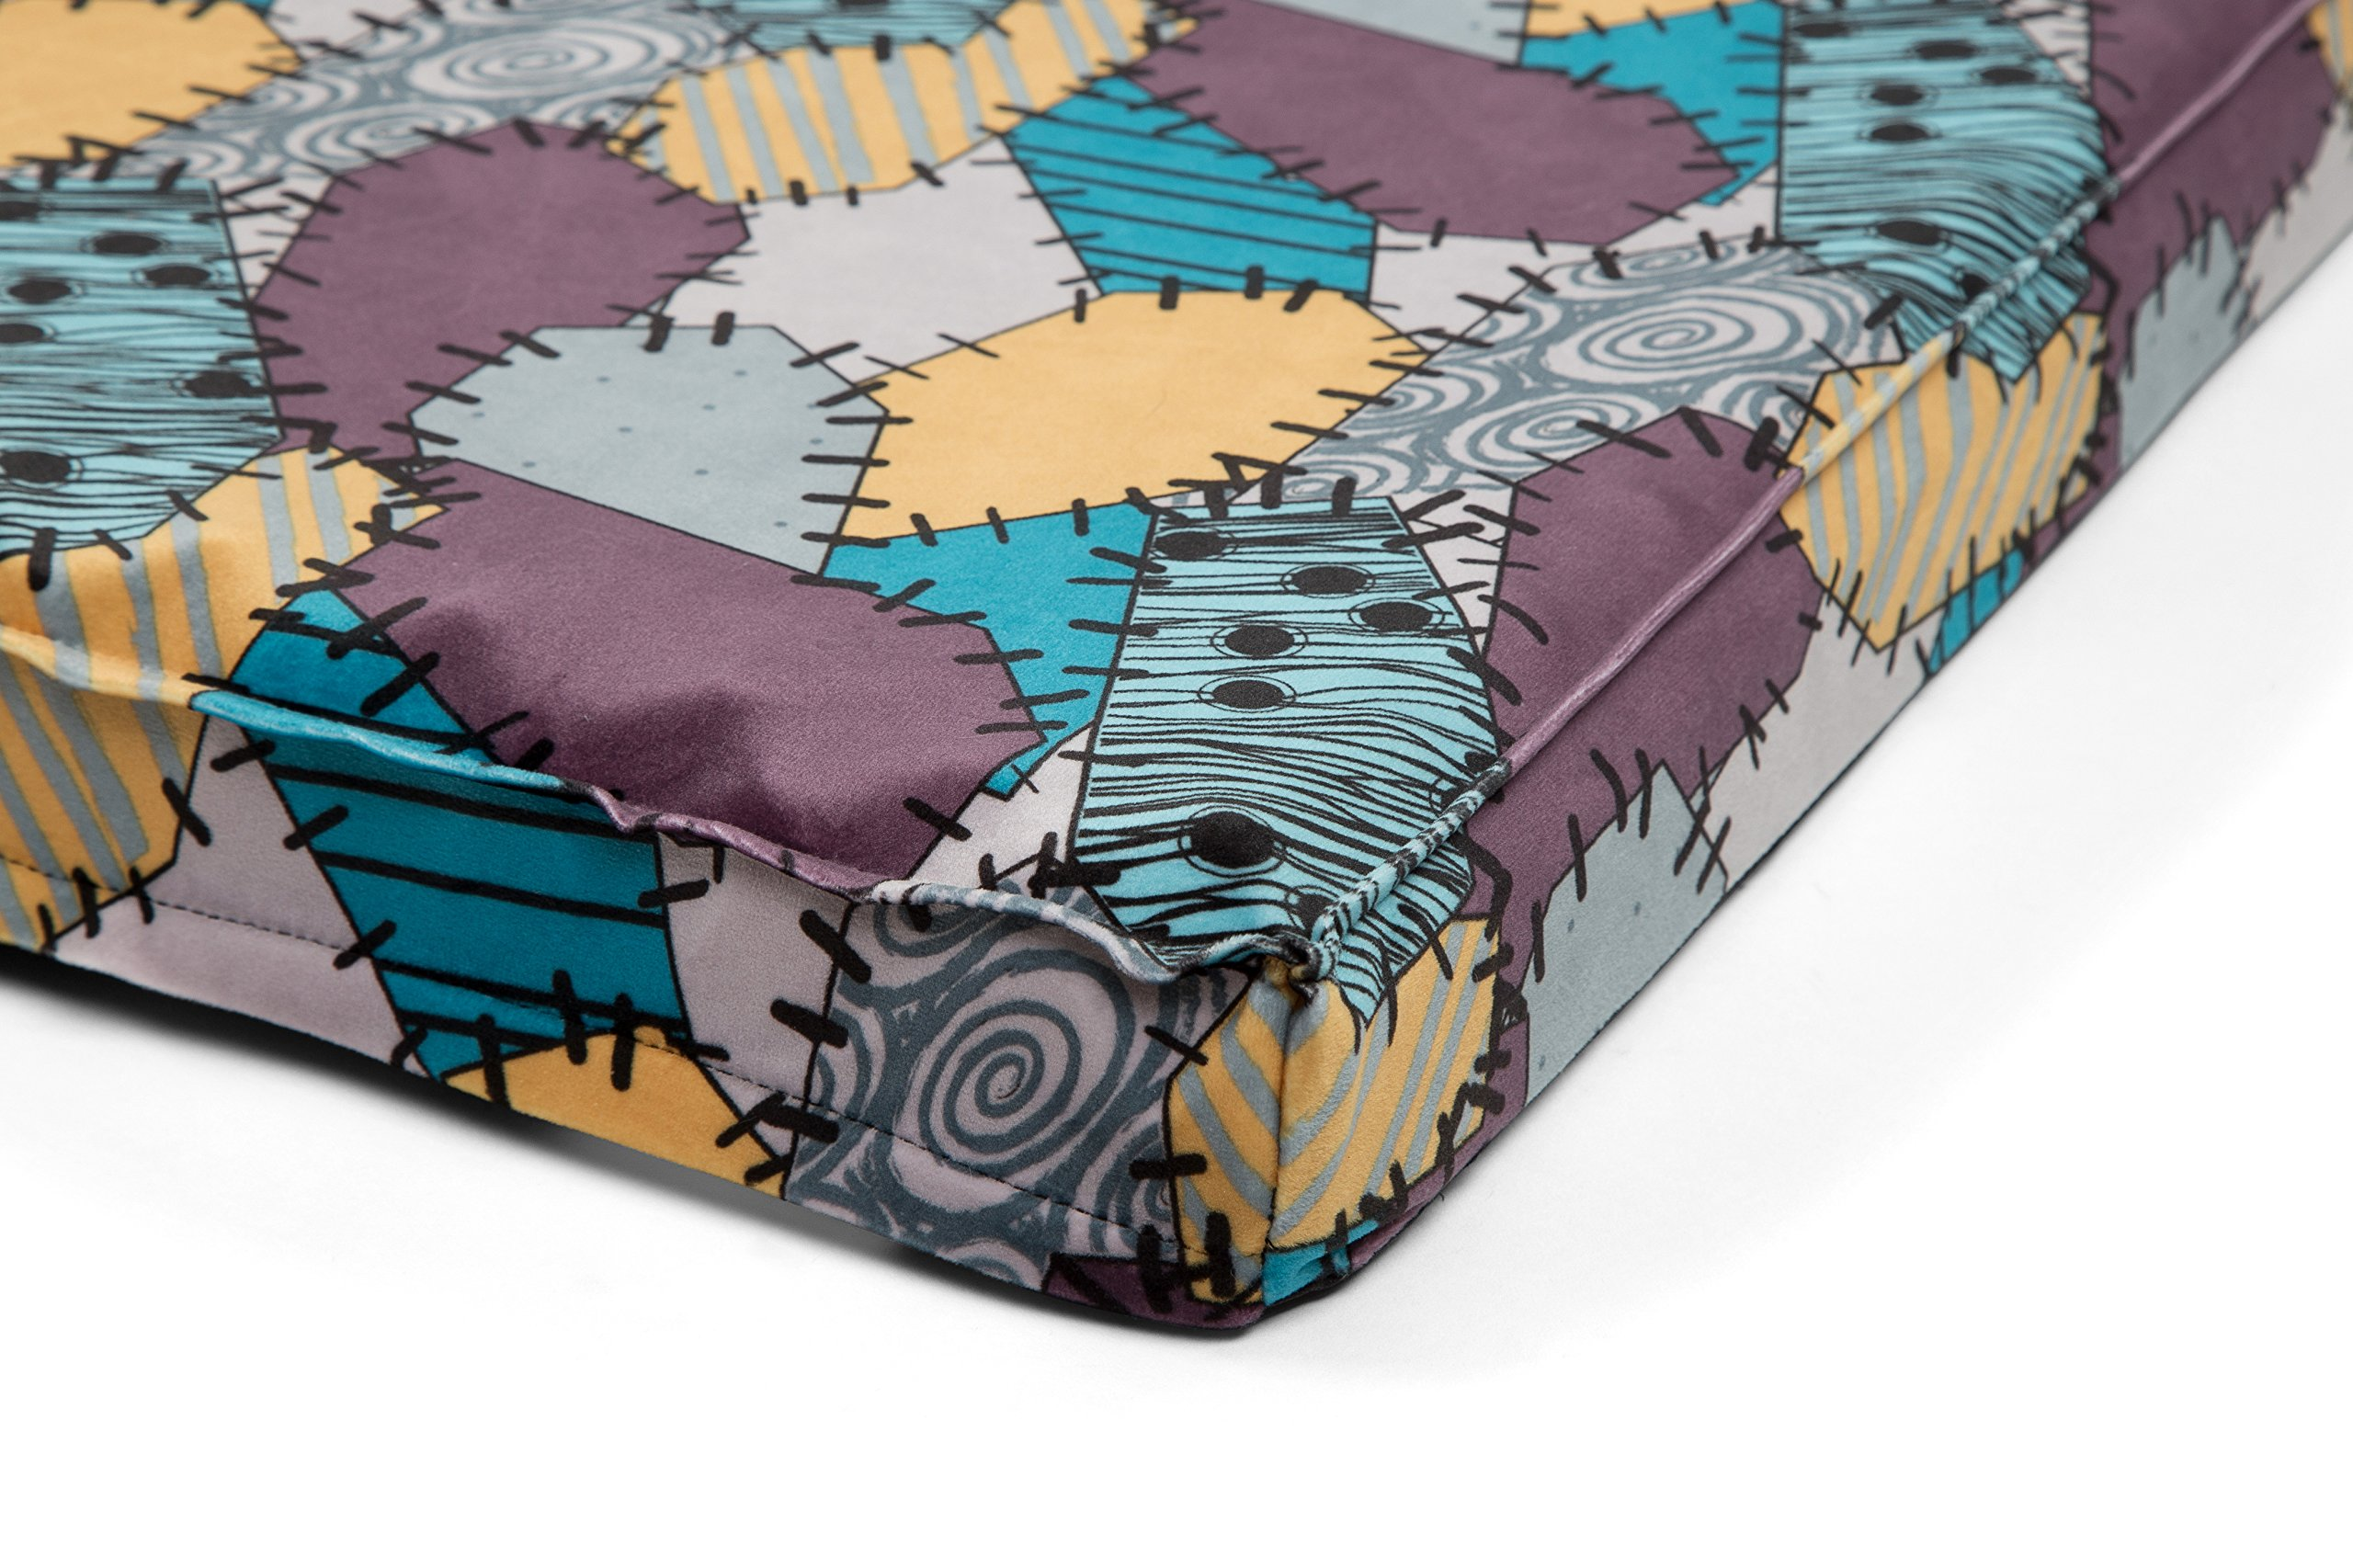 """Disney Nightmare Before Christmas Sally Orthopedic 2.5'' Joint Relief Breathable Dog Bed/Dog Mattress/Crate Mat, 27 x 36 x 2.5"""", Made with High-Density CertiPUR Foam, Dirt/Water Resistant Bottom by Disney (Image #5)"""